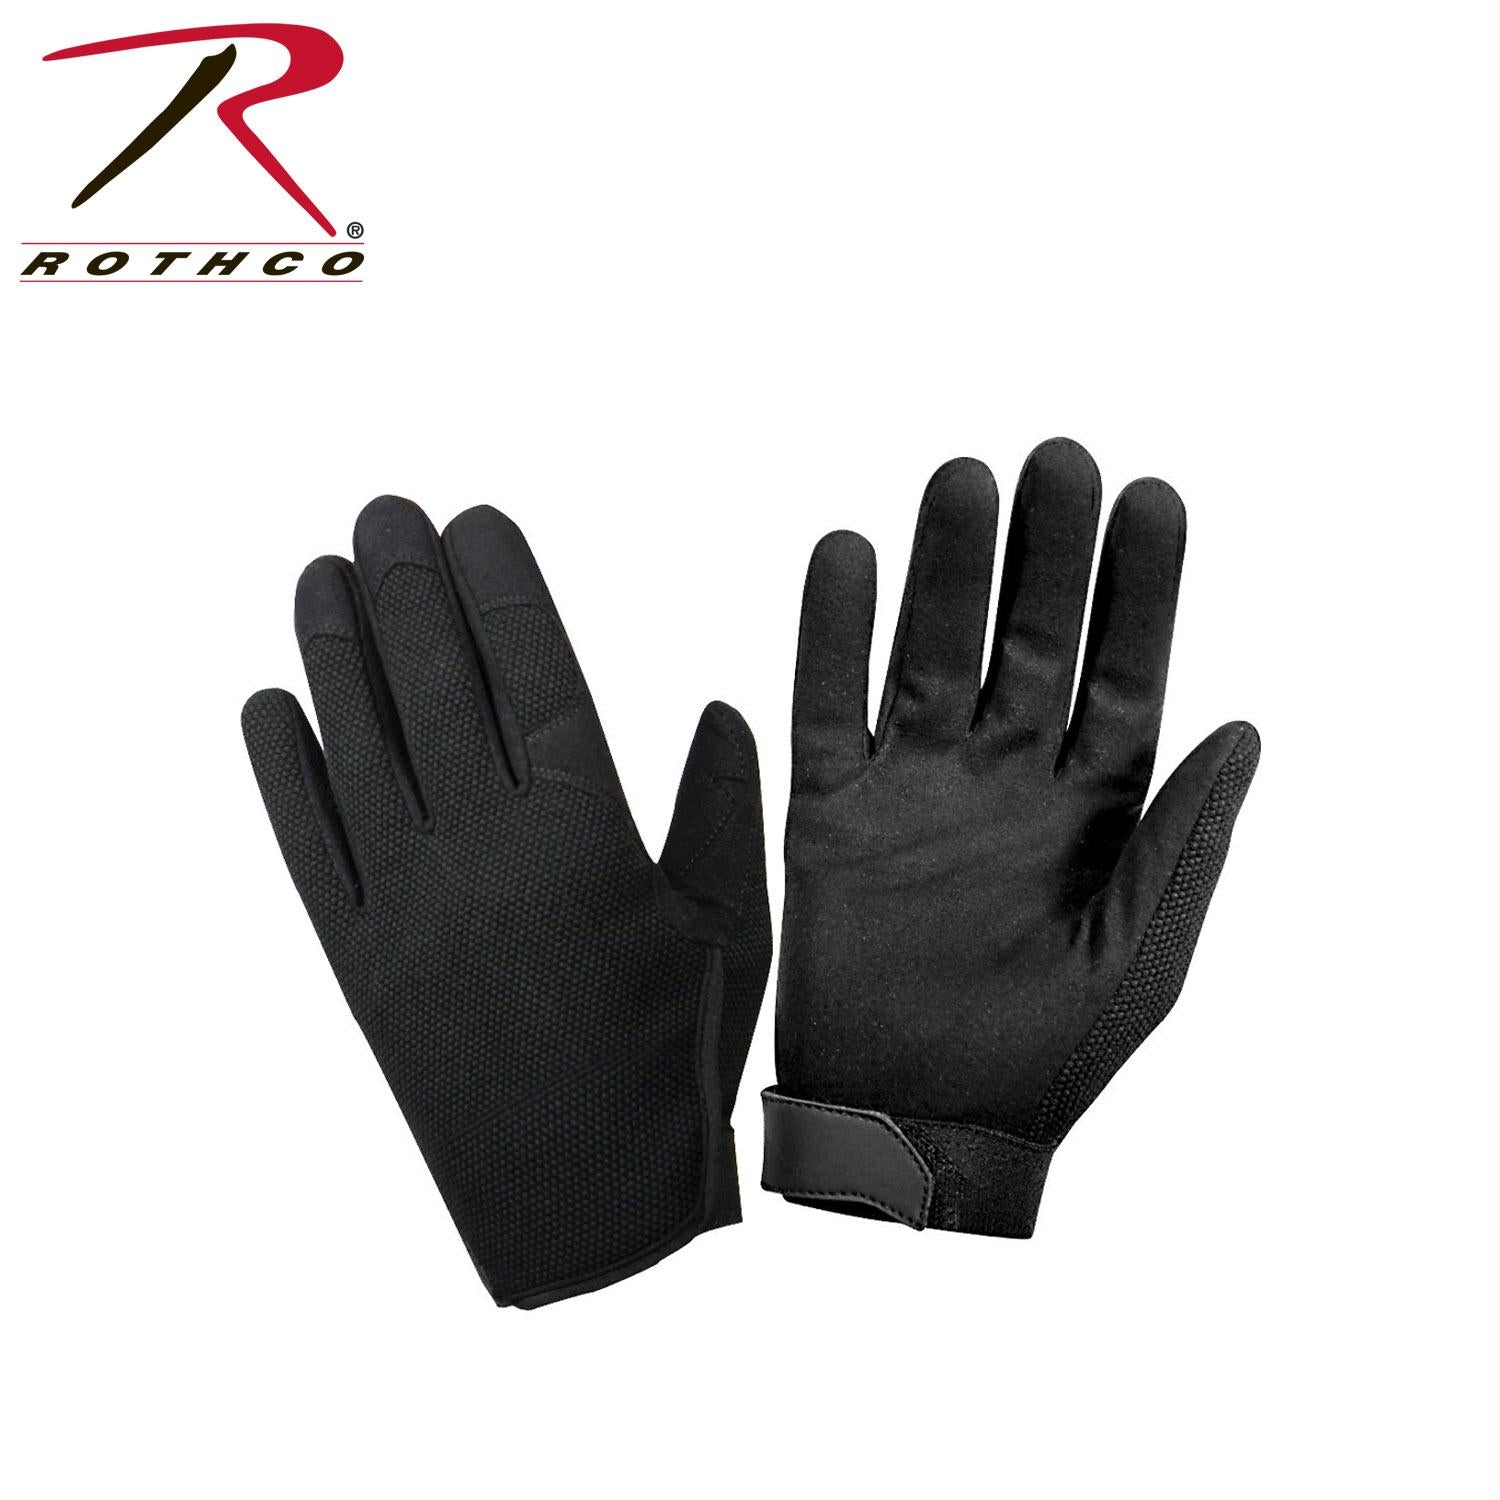 Rothco Ultra-light High Performance Gloves - Black / 2XL